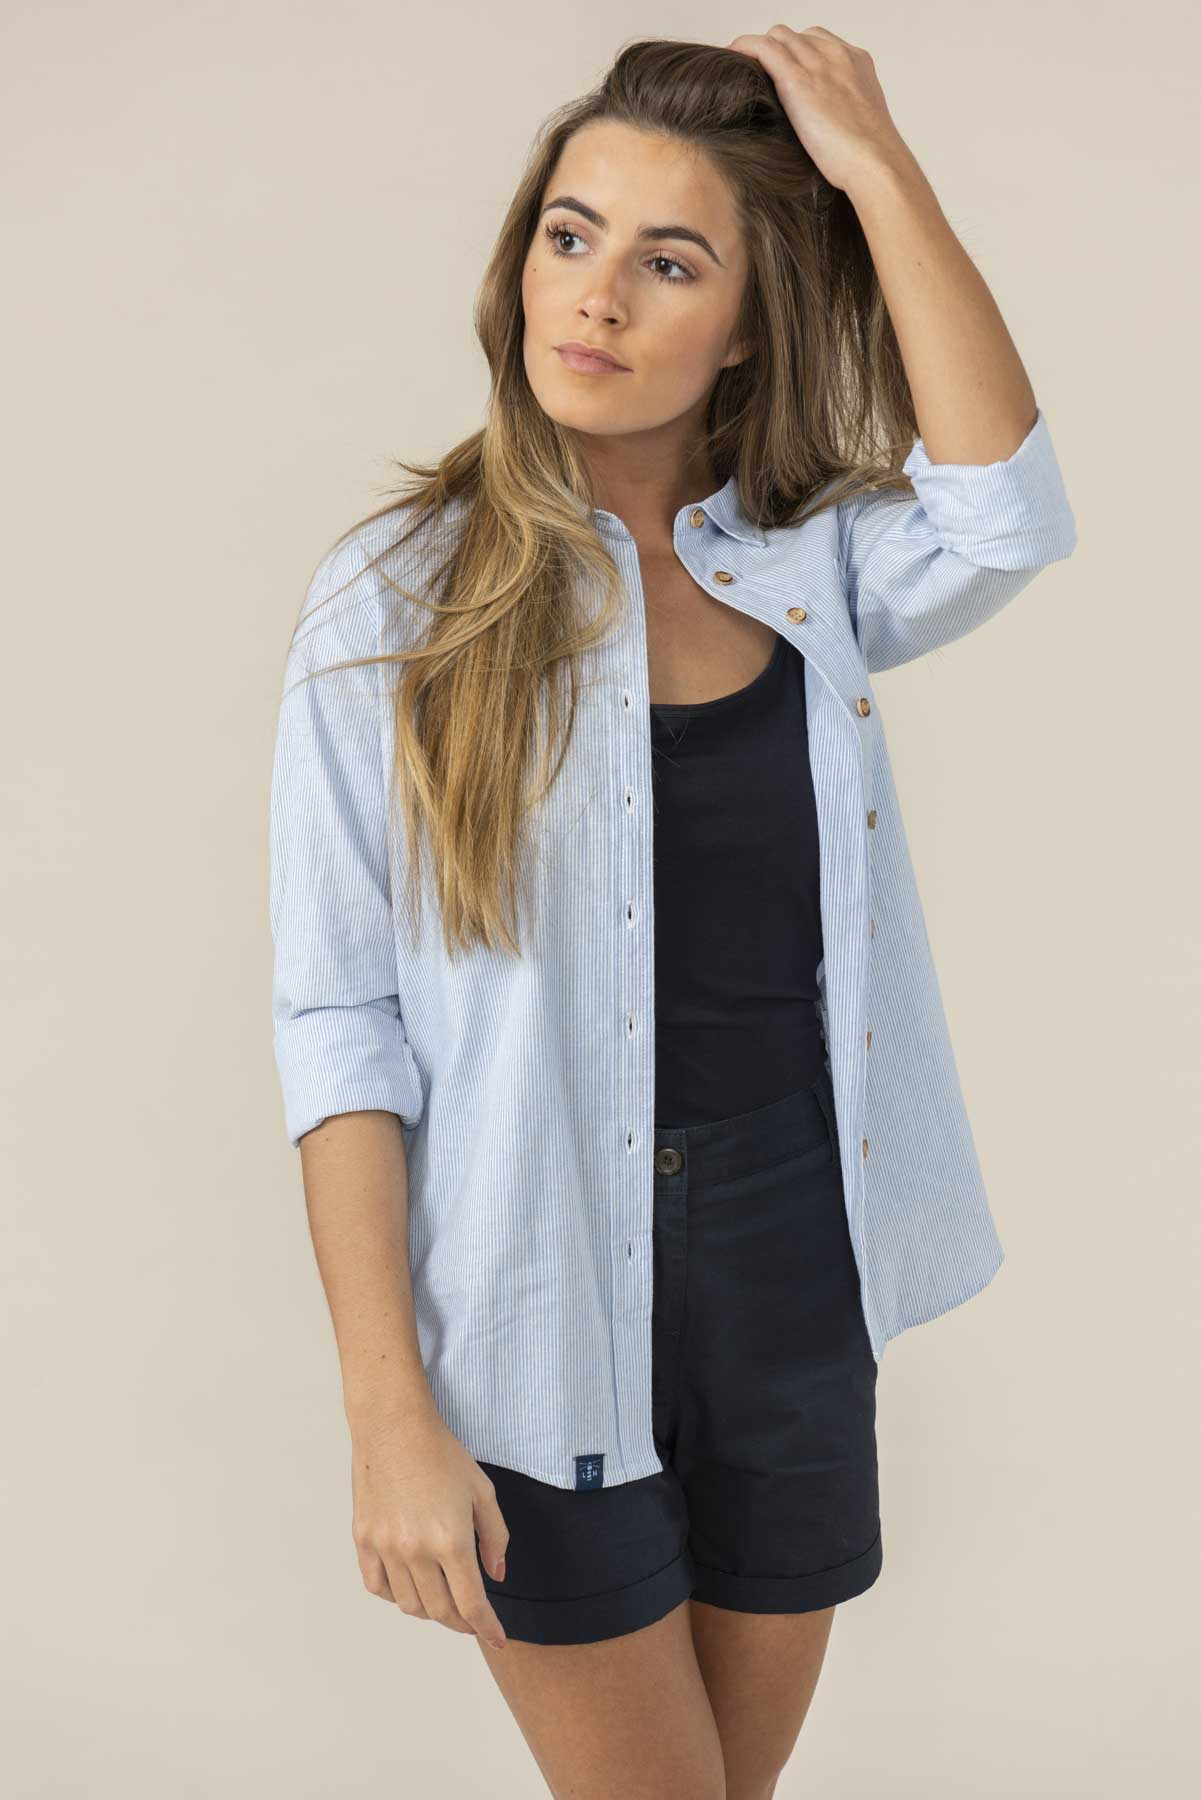 Lighthouse Ocean - Womens Button Up Shirt - Oxford Stripe